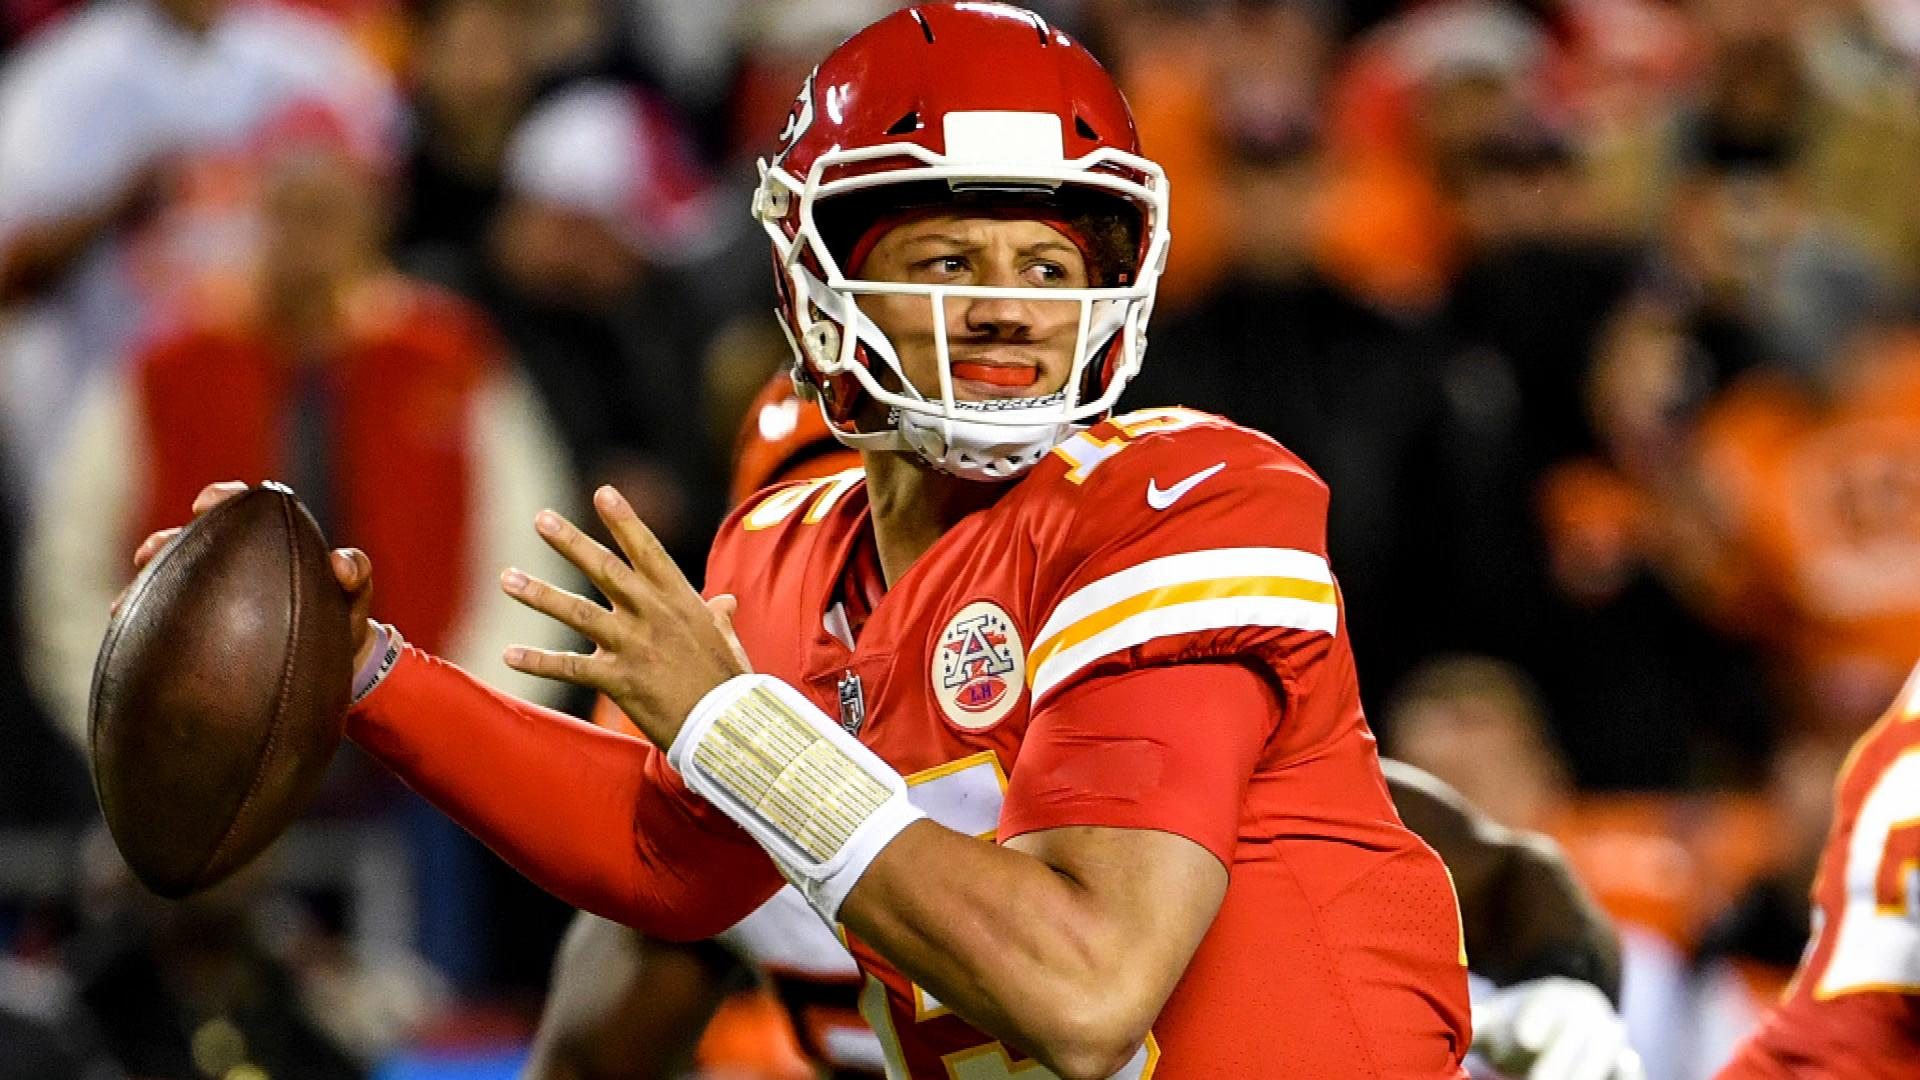 Chiefs' Patrick Mahomes the early favorite to win NFL MVP in 2019